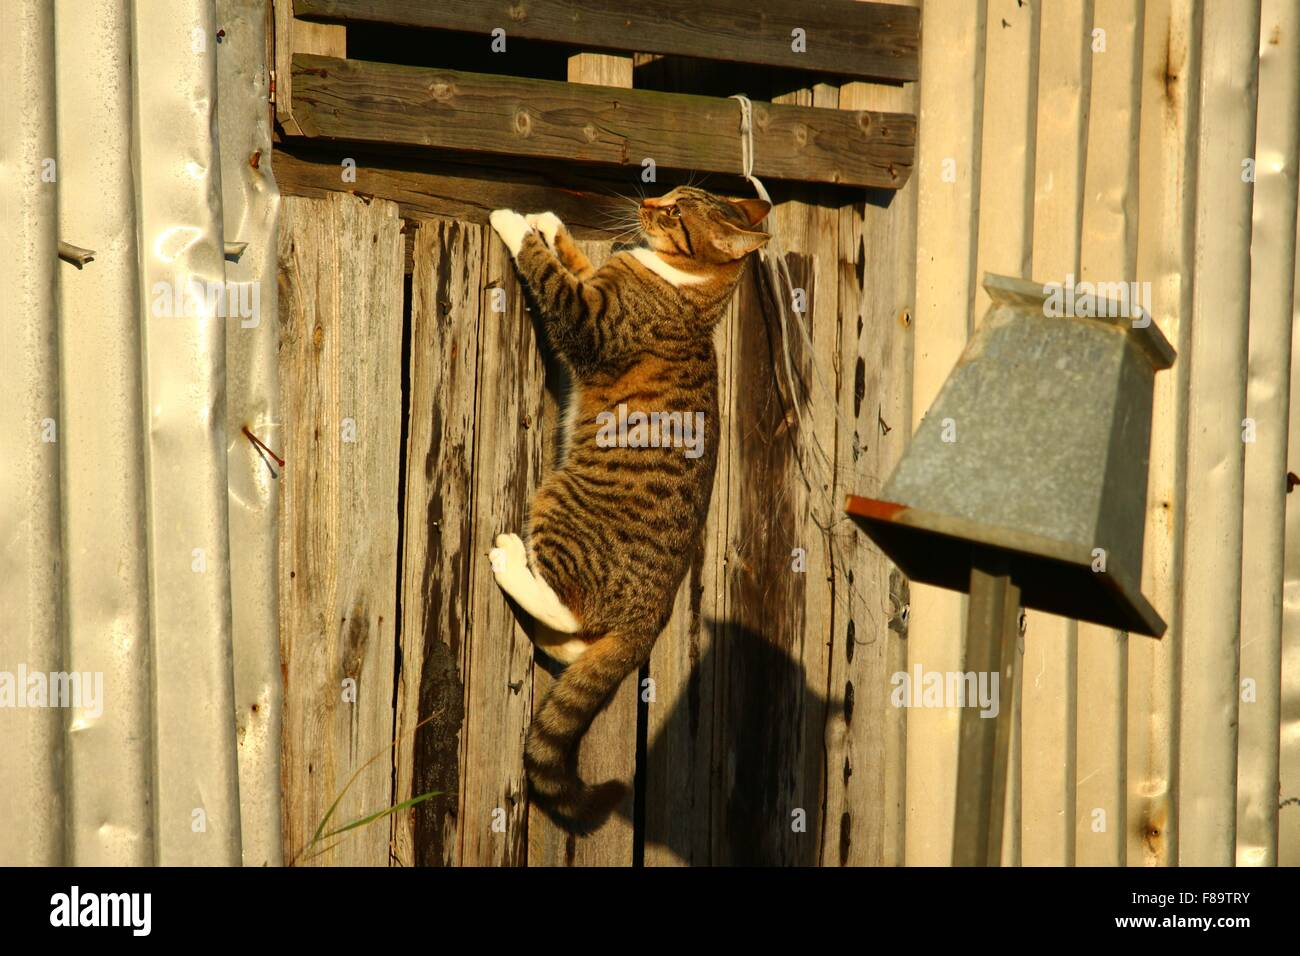 Tabby cat climbing up a wooden building outside - Stock Image